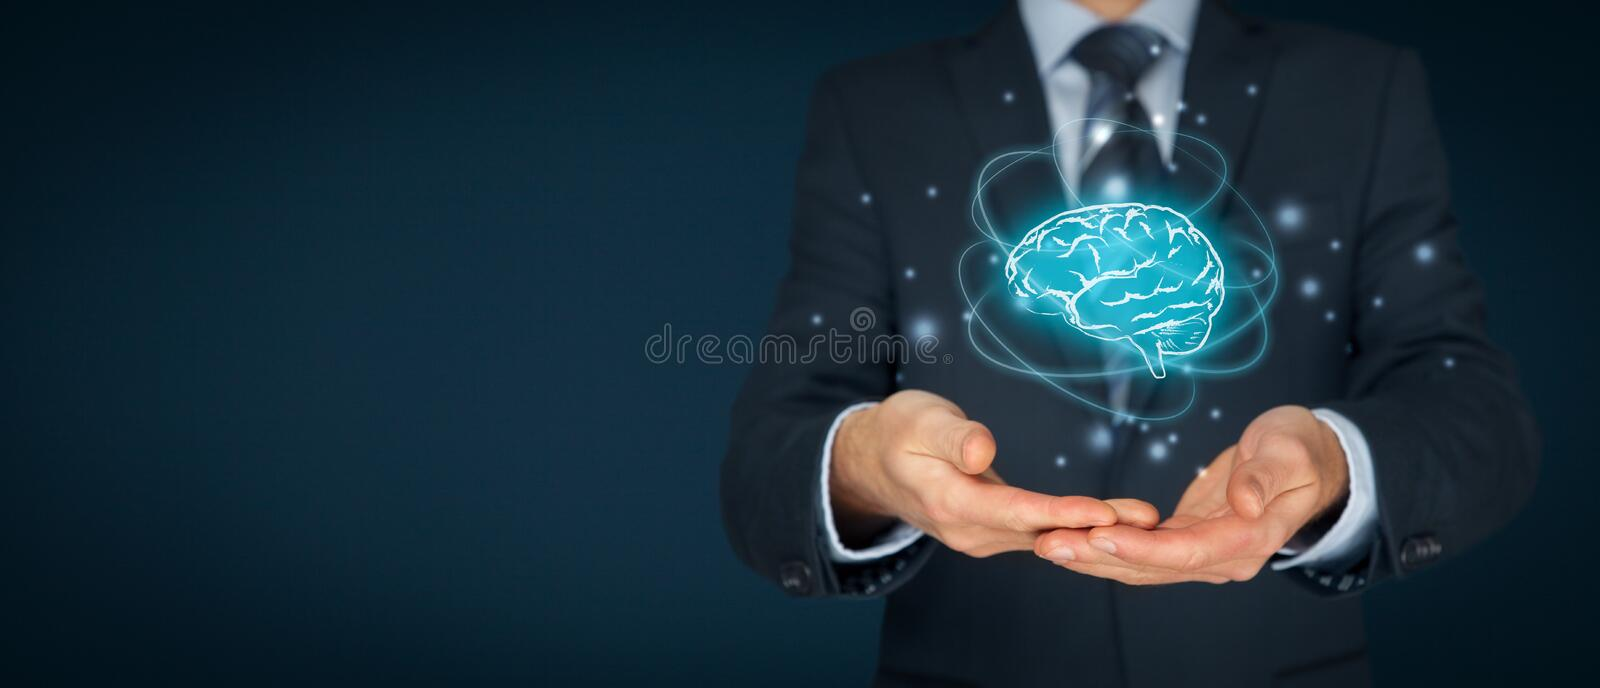 Artificial intelligence and creativity. Artificial intelligence AI, machine deep learning, creativity, headhunter, innovation and intellectual property rights stock image